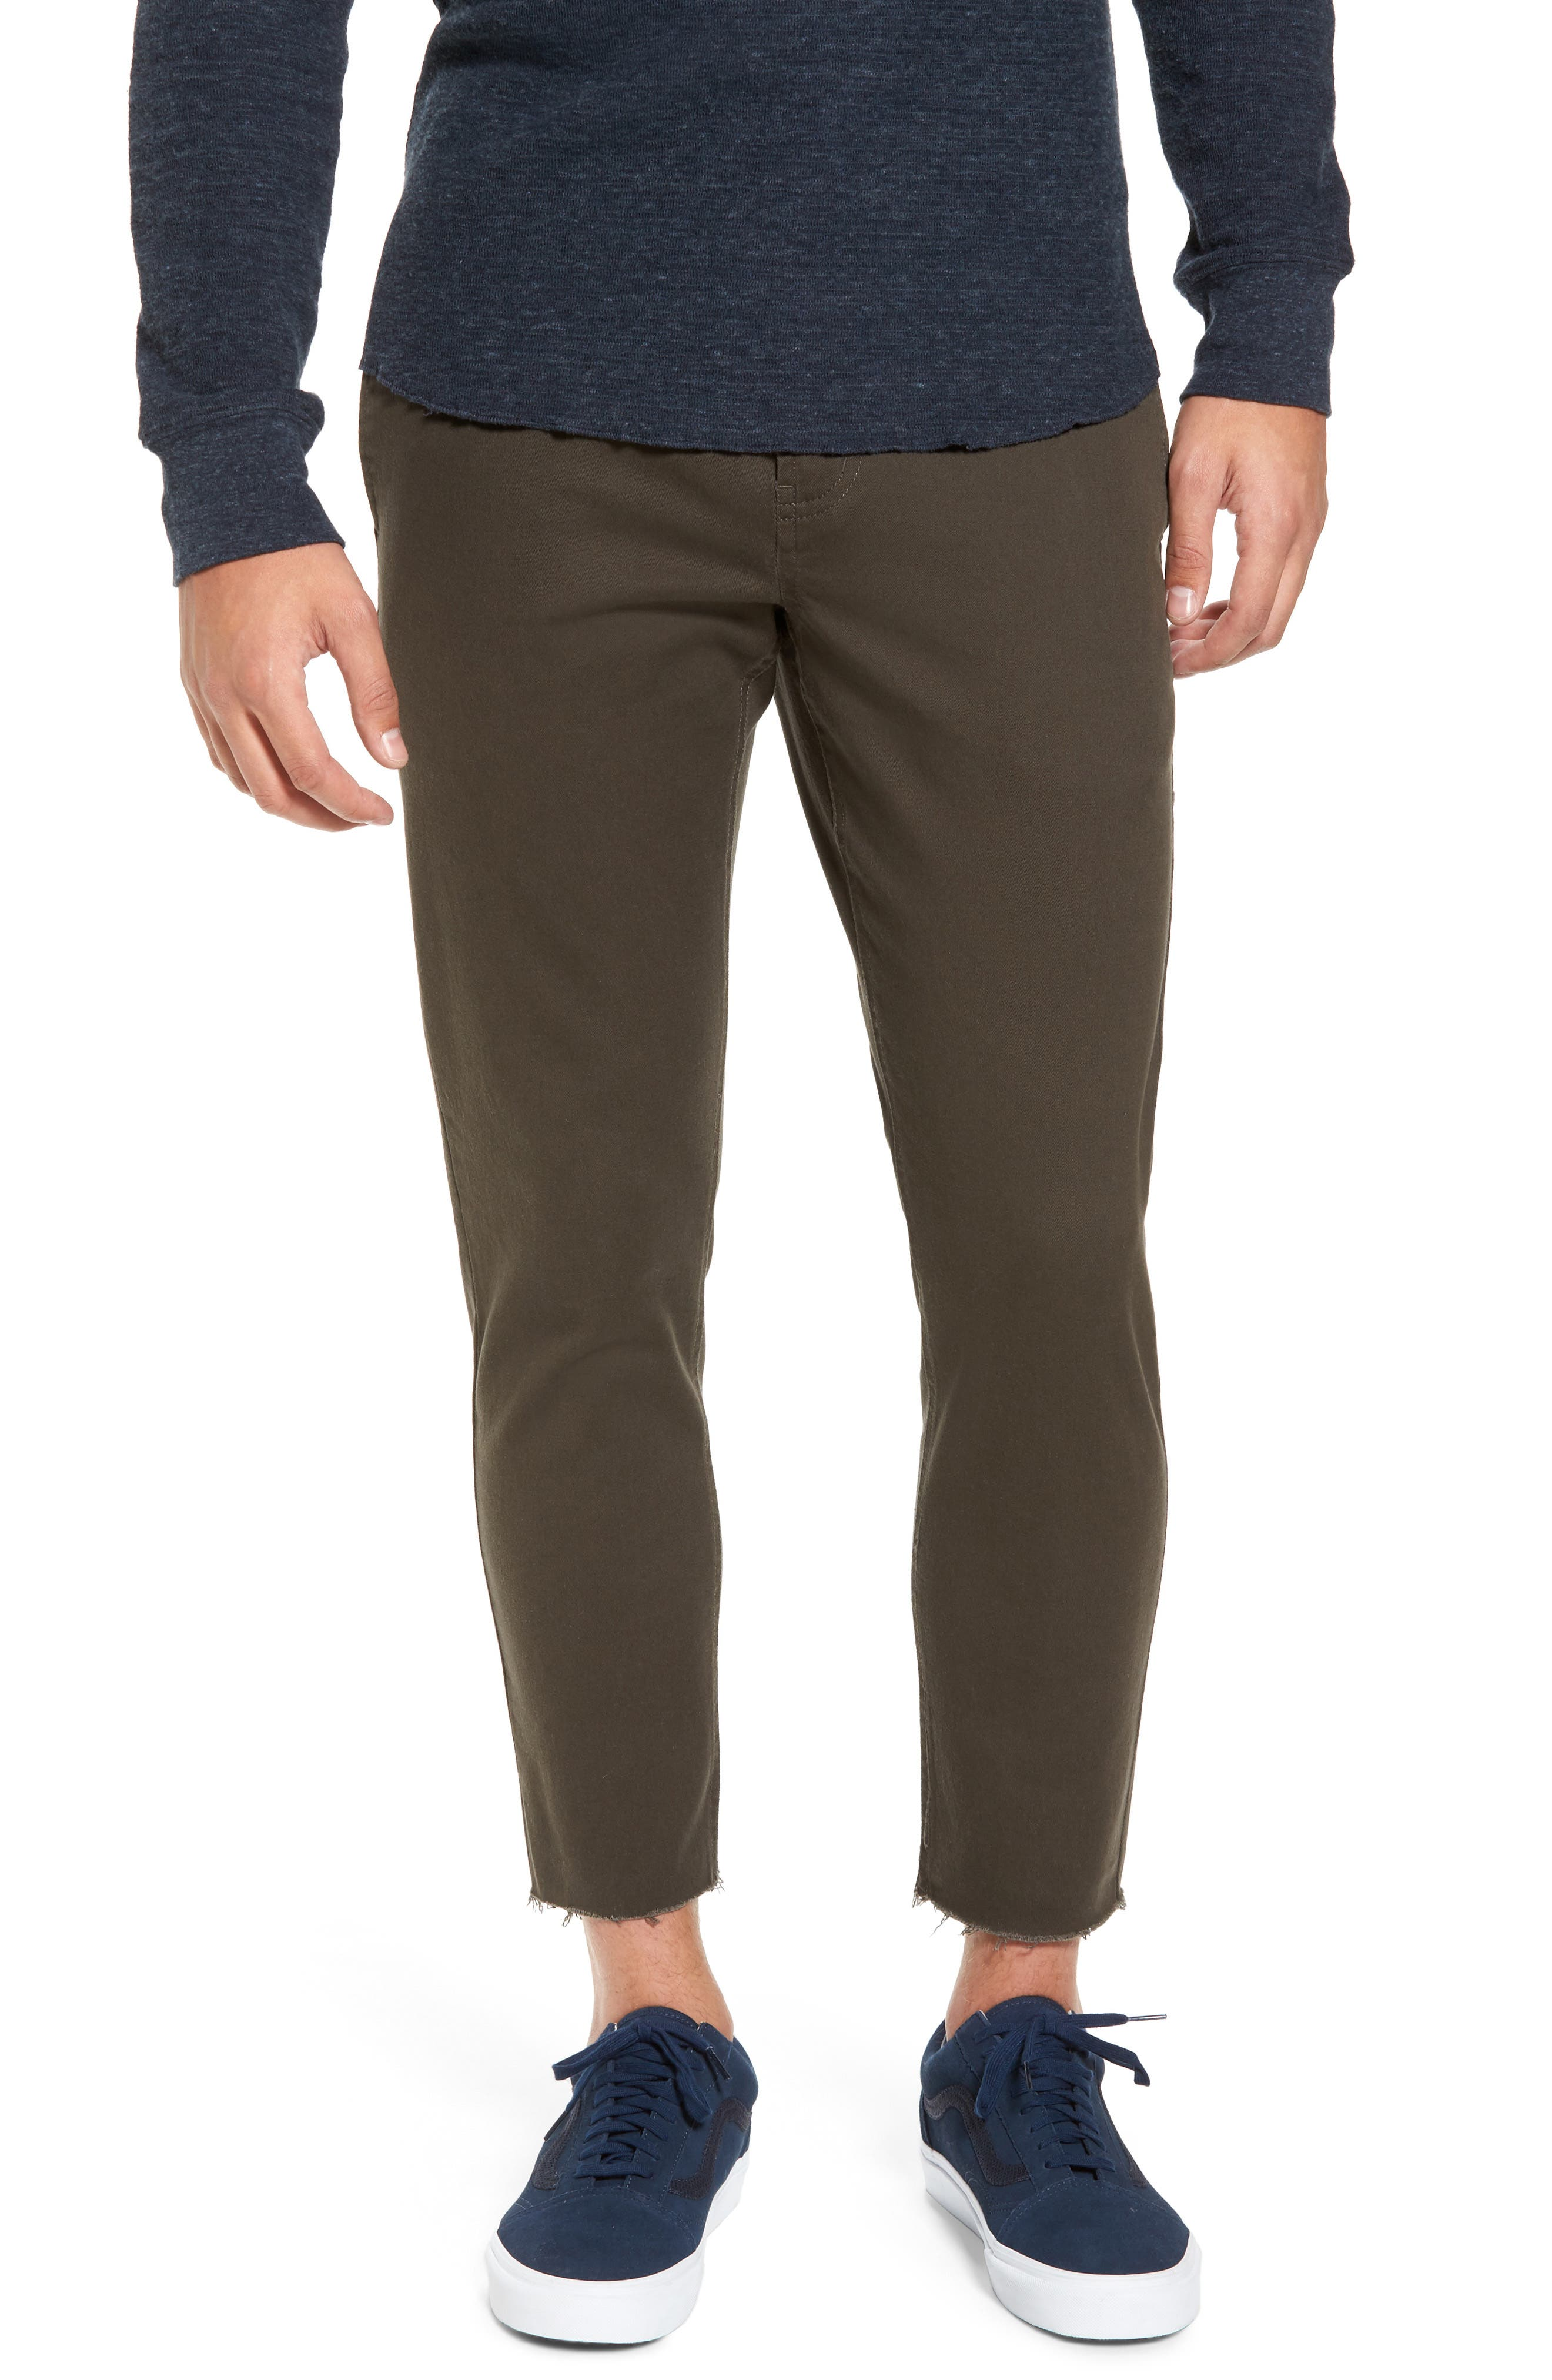 Barney Cools B.Line Crop Slim Fit Chinos